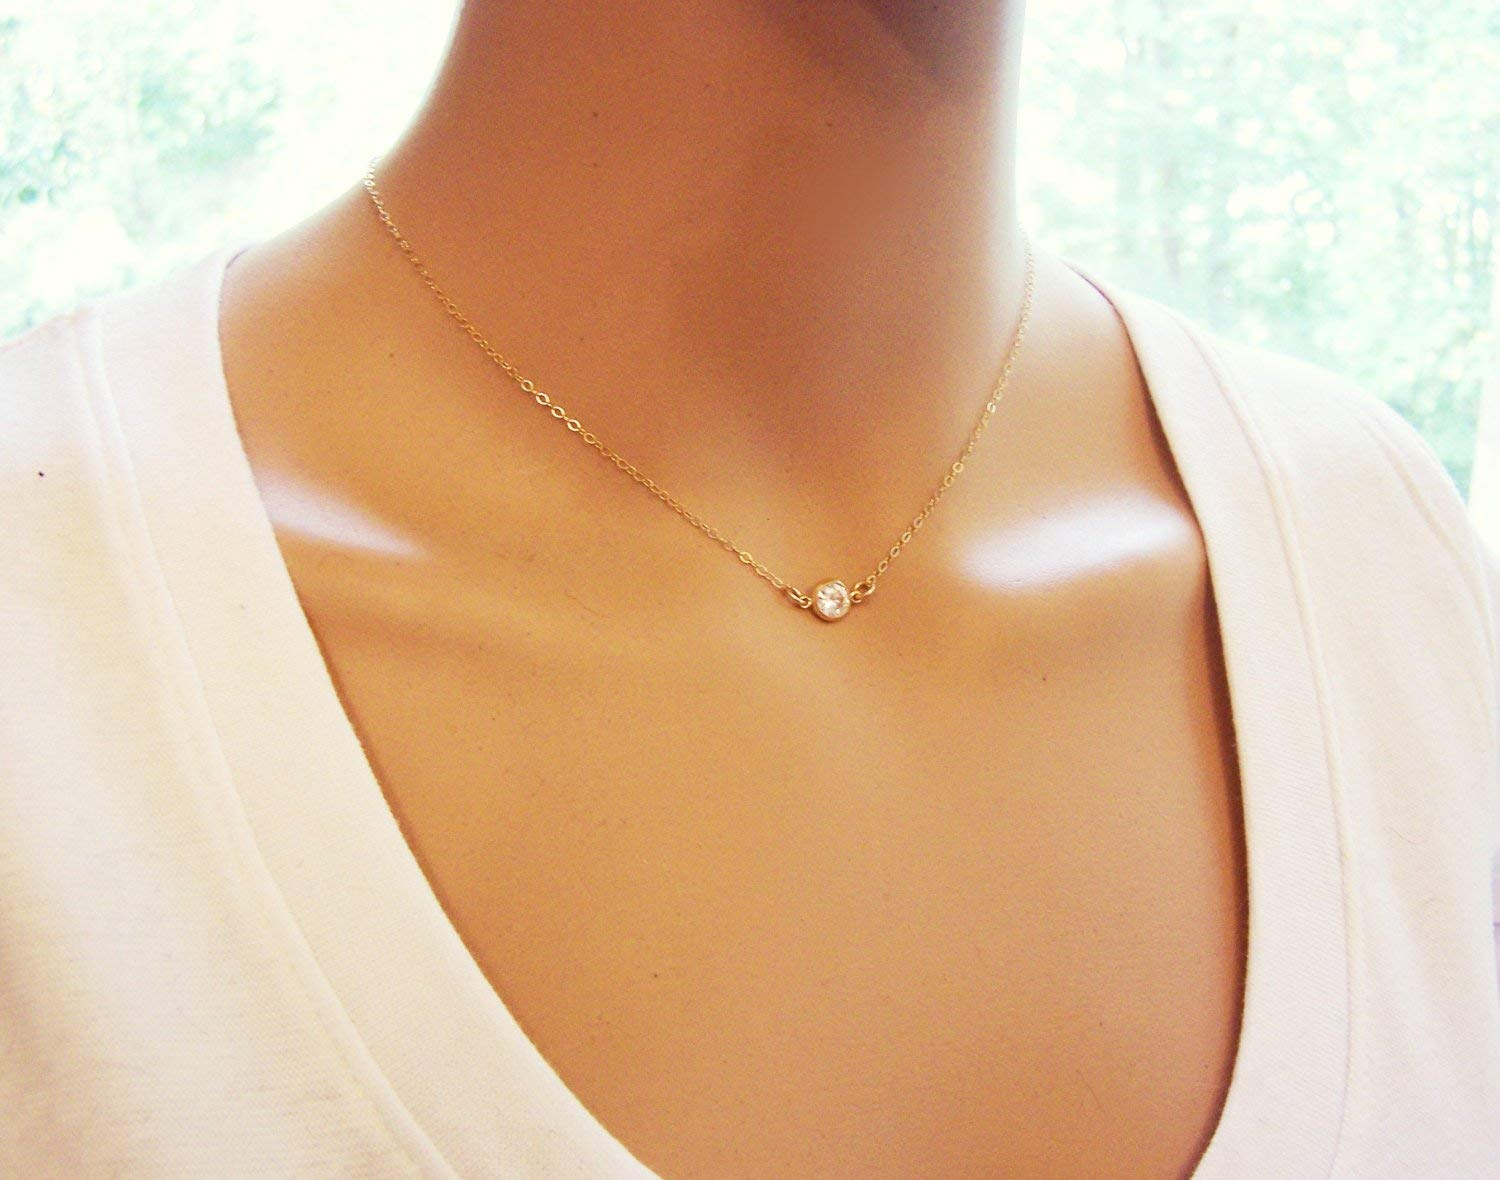 14k Gold Filled Tiny Square Diamonds Dainty Body Chain Dainty Gold Body Chain  Gold Body Chain  Body Chain Gold Filled Jewelry